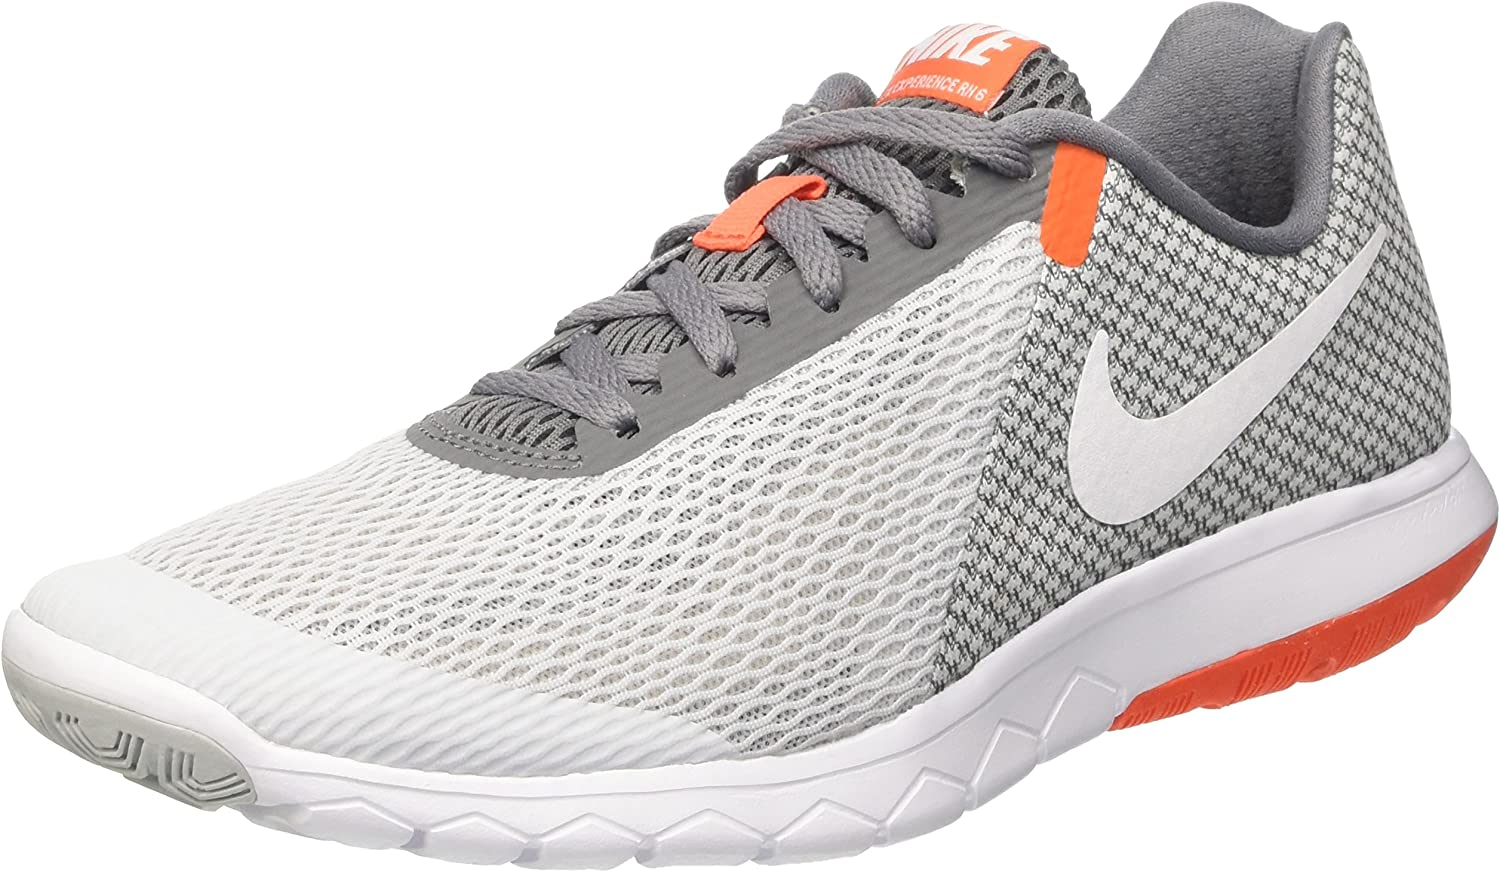 NIKE Men s Flex Experience RN 6 Running Shoes